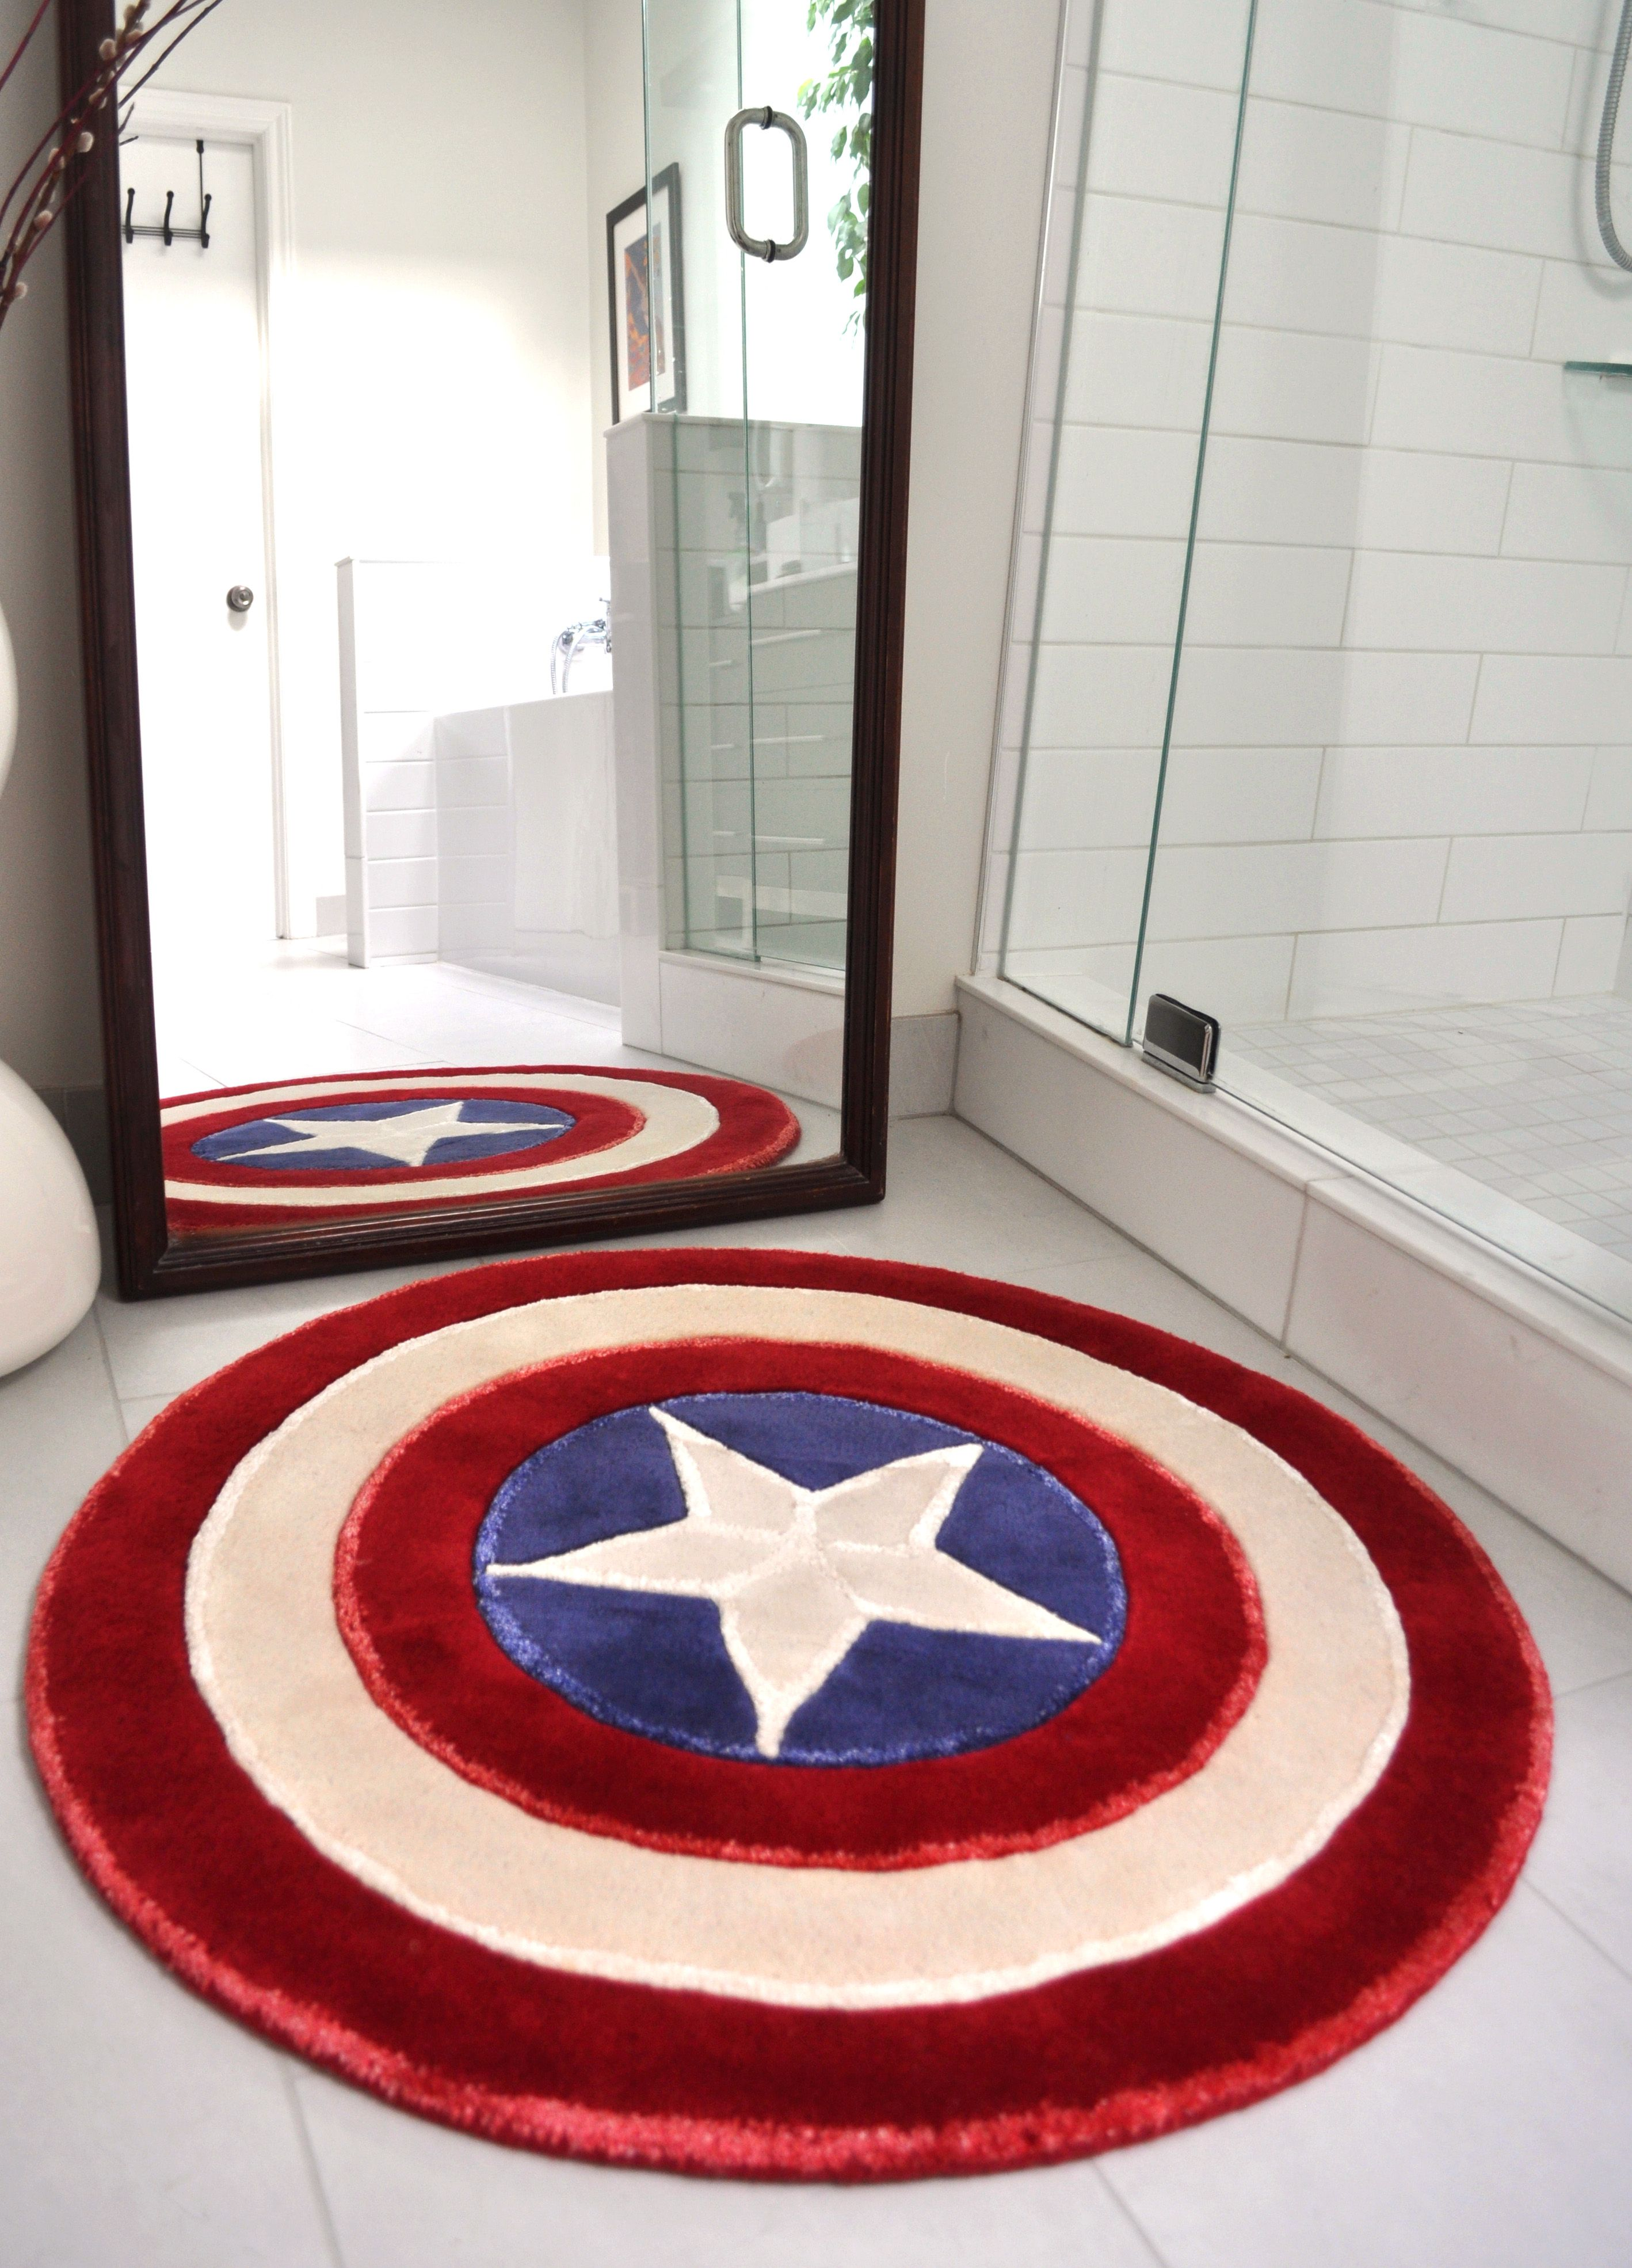 The Captain U S Rug Pays Tribute To America Purchase This At Www Totemrugs Com